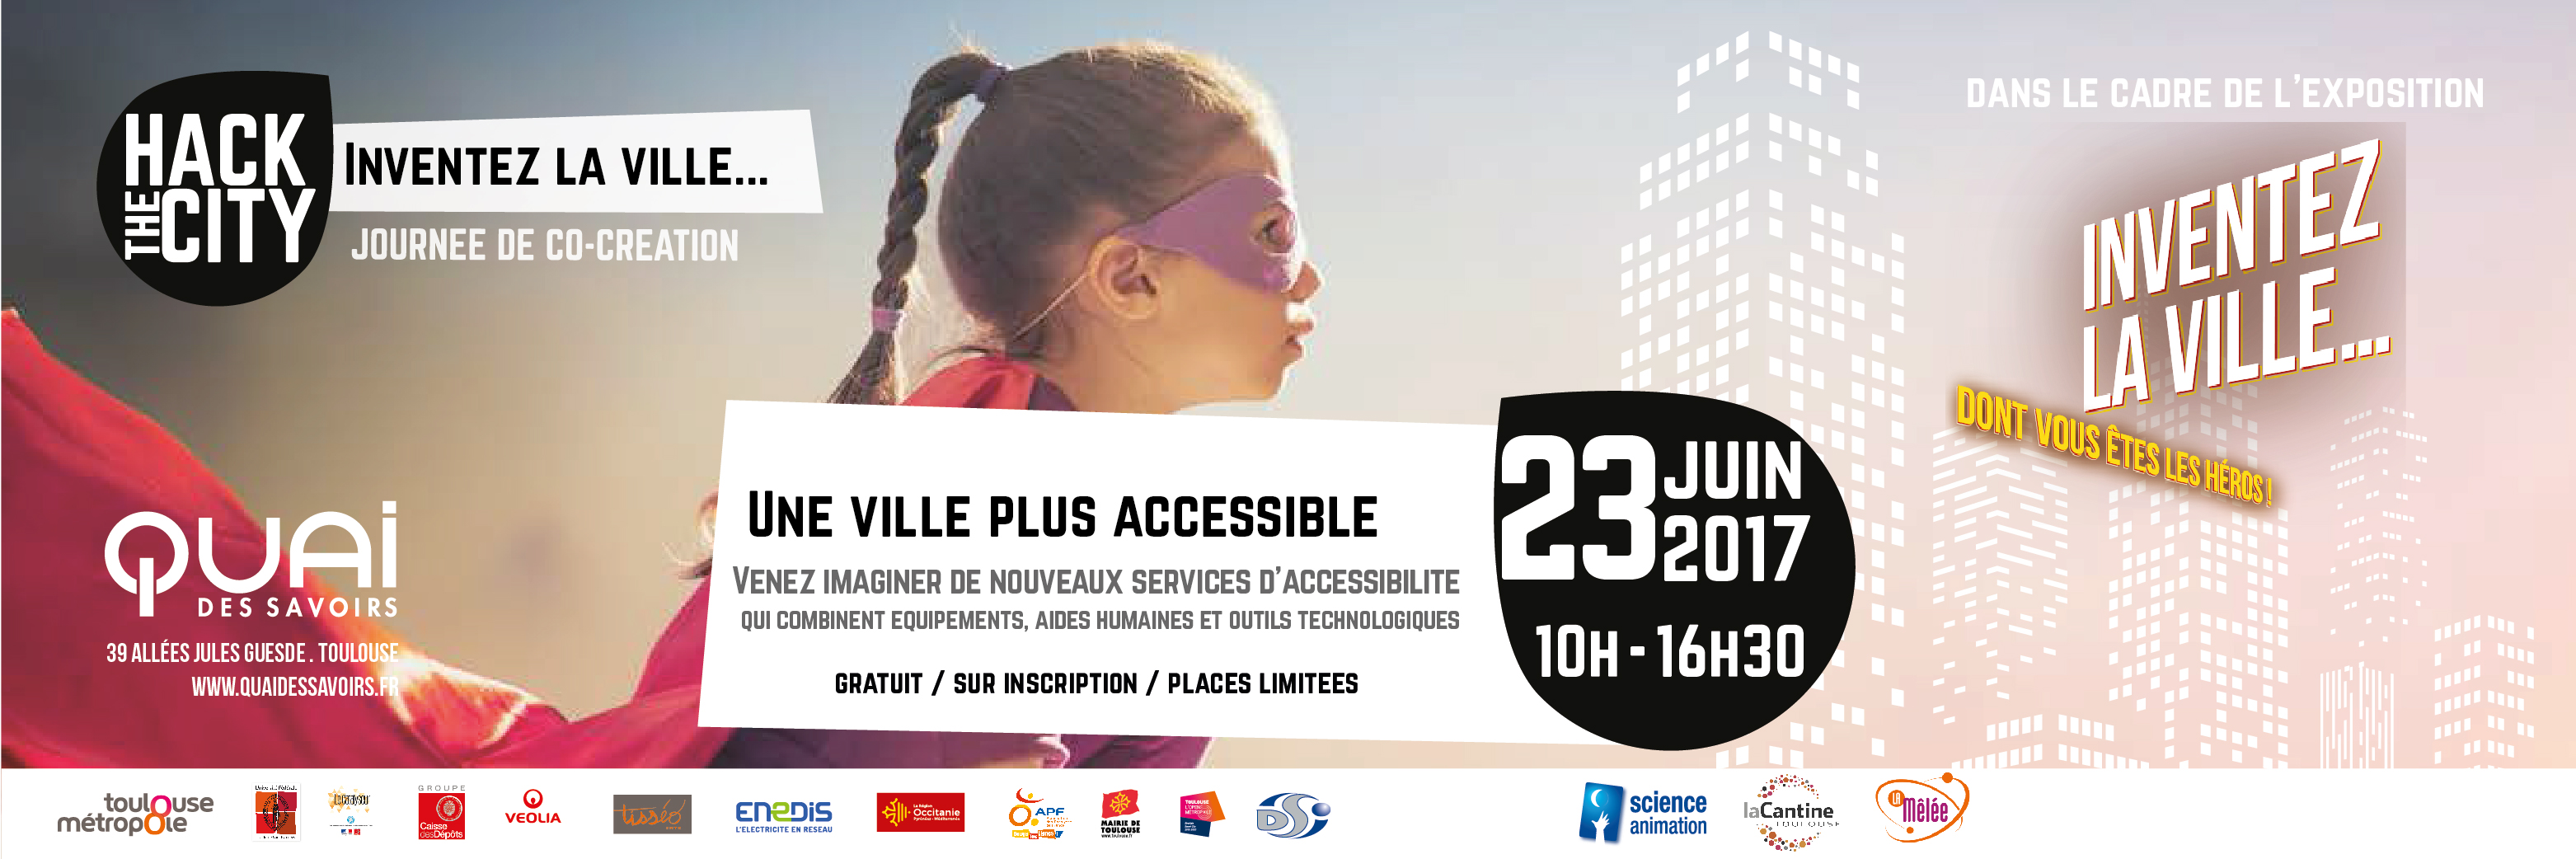 Une ville plus accessible